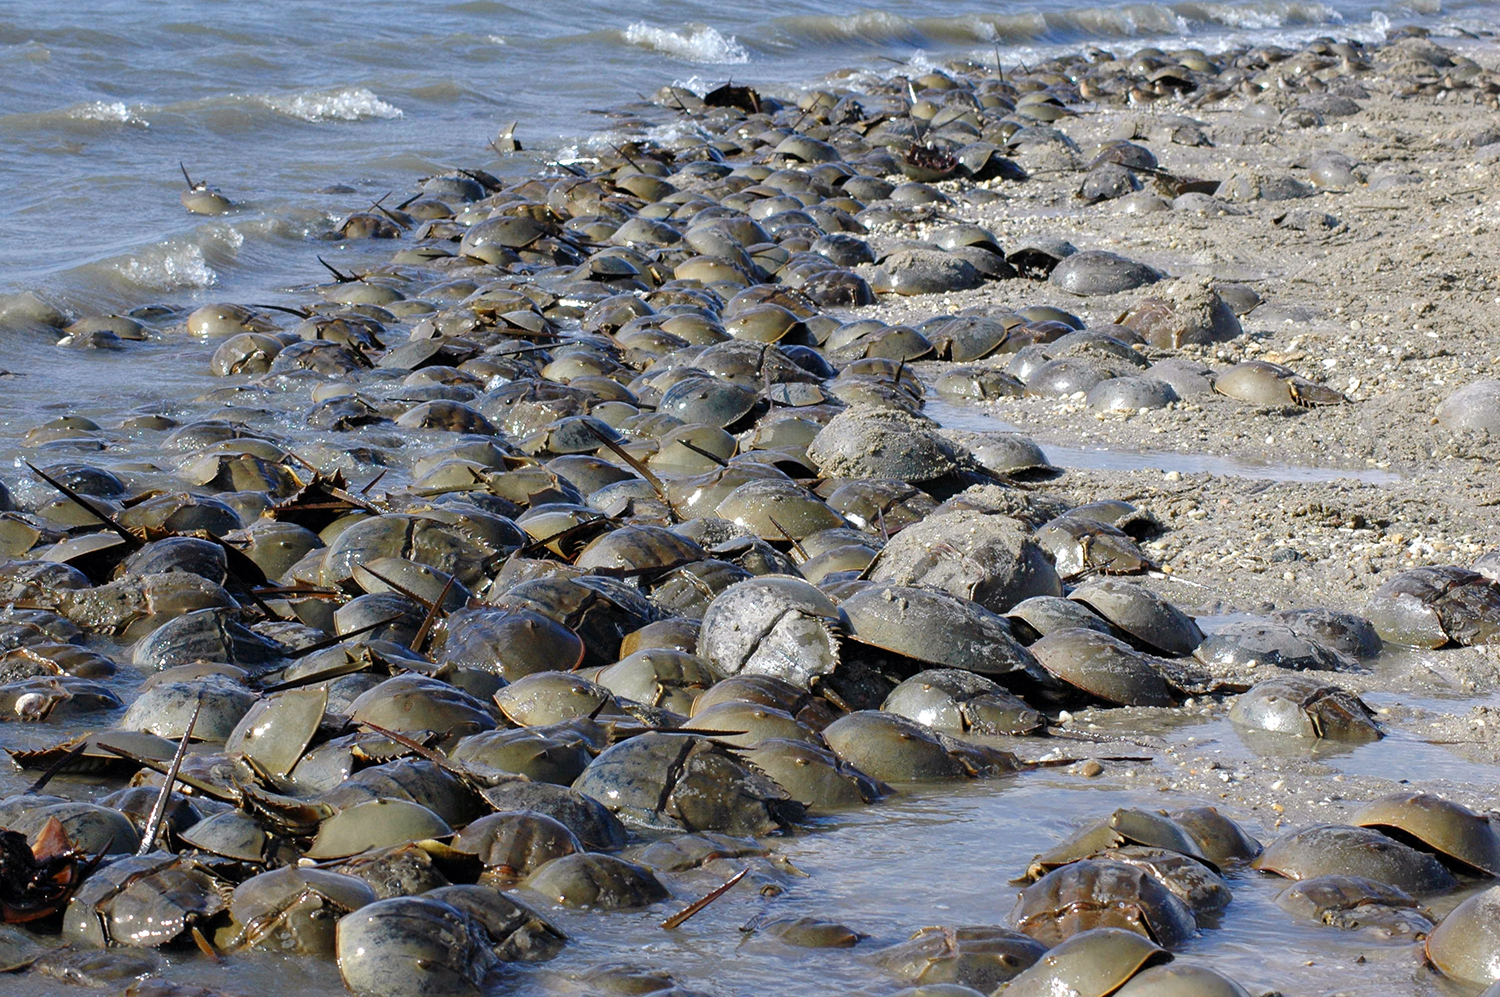 Horseshoe crabs come ashore on sandy beaches en masse to lay their eggs.